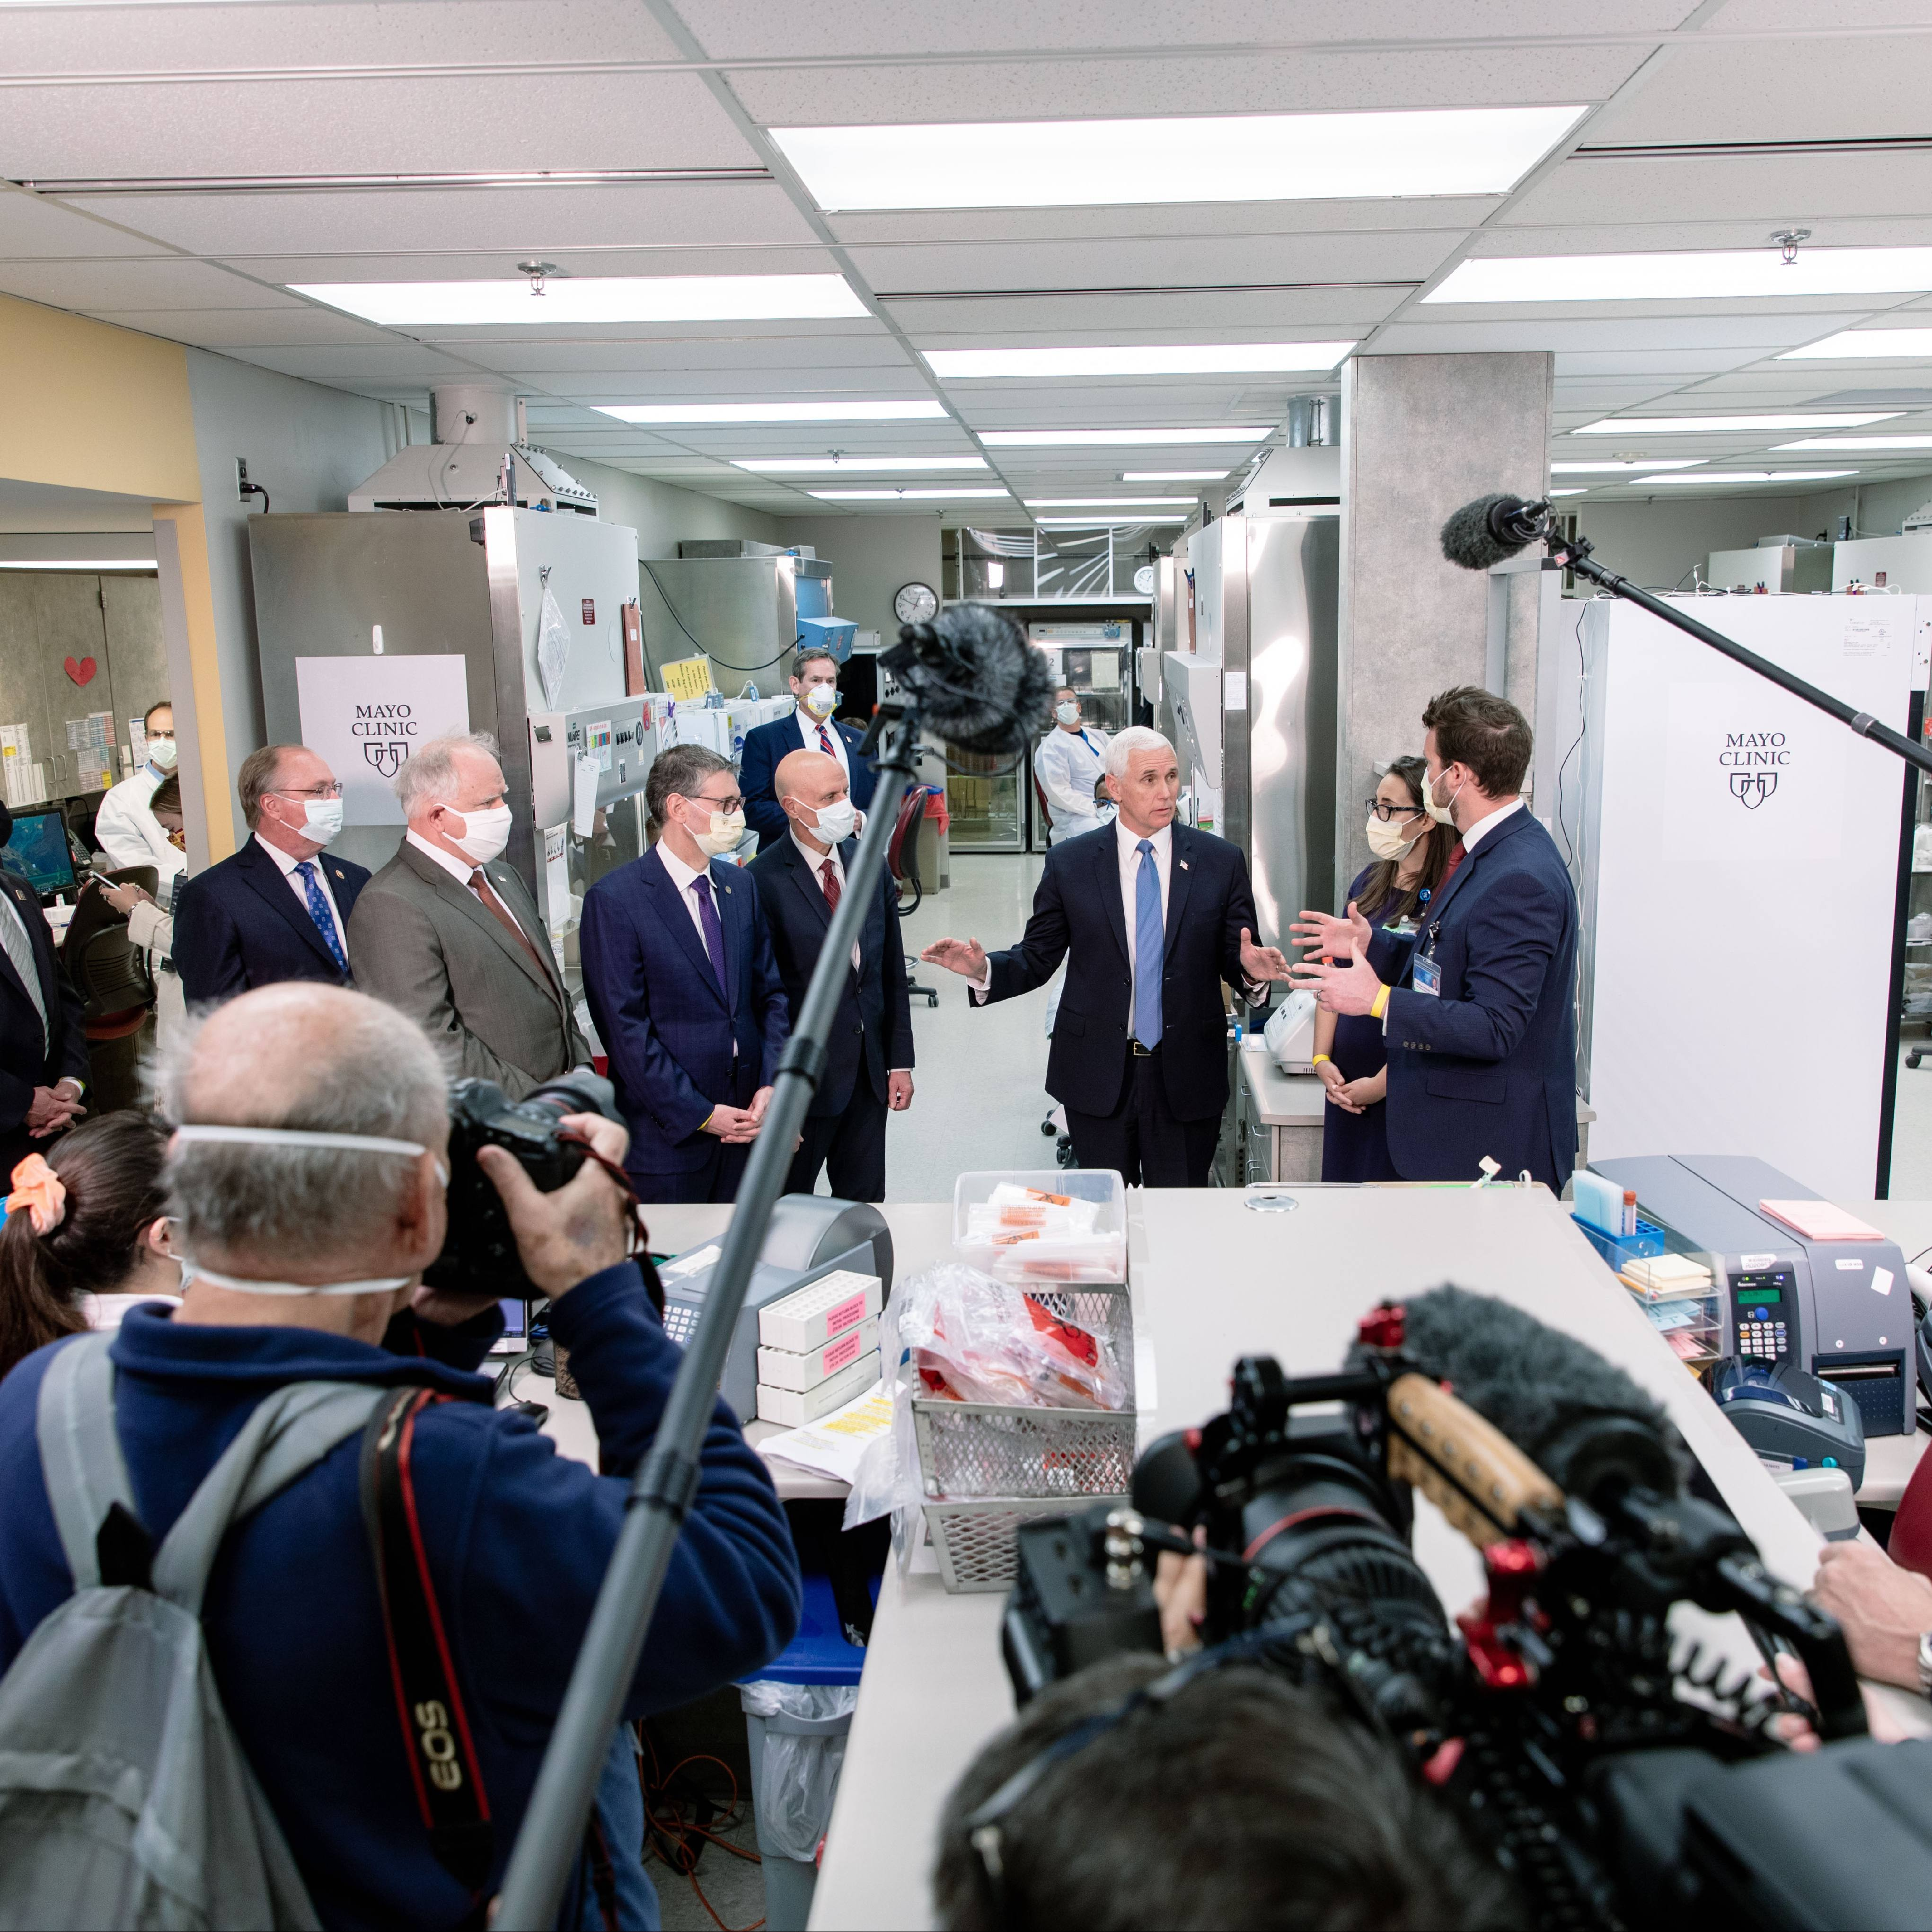 Vice President Mike Pence in Mayo Clinic lab with leadership